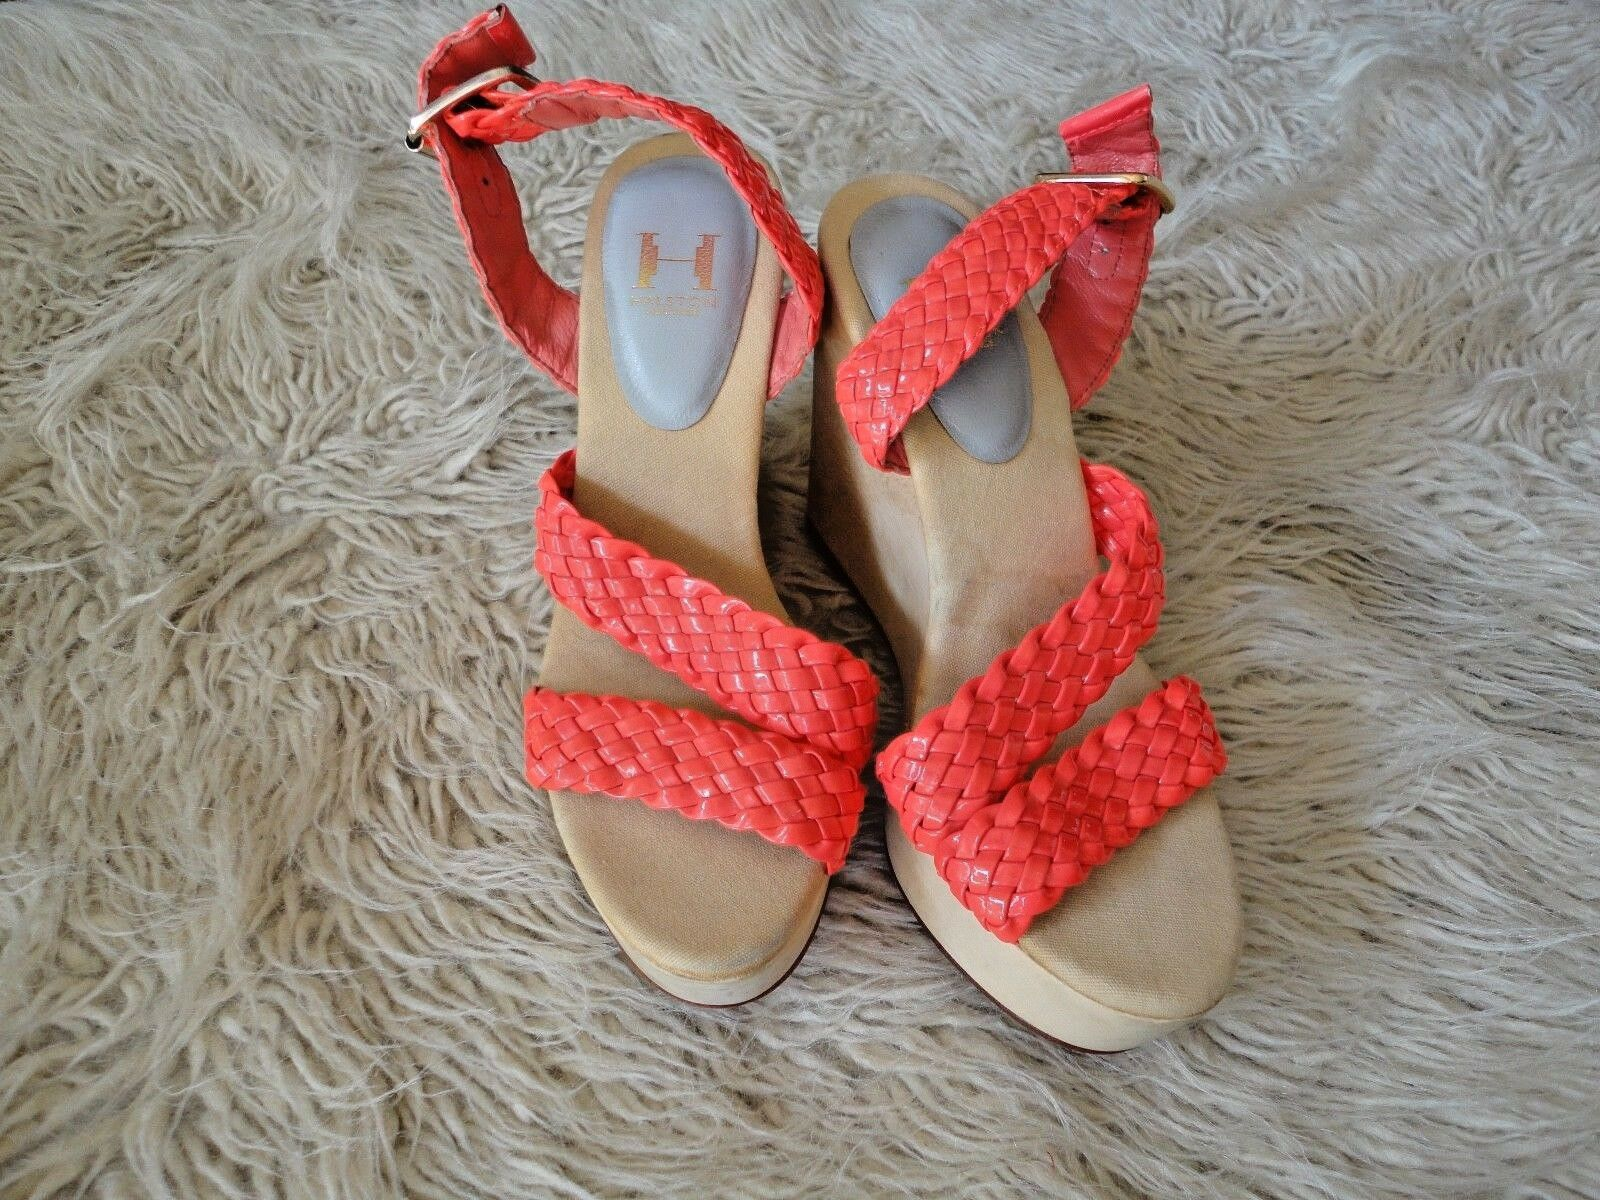 HALSTON HERITAGE Neon Pink Patent Leather Braid orange Wooden Wedge Wedge Wedge Heels Sz 6 24c974